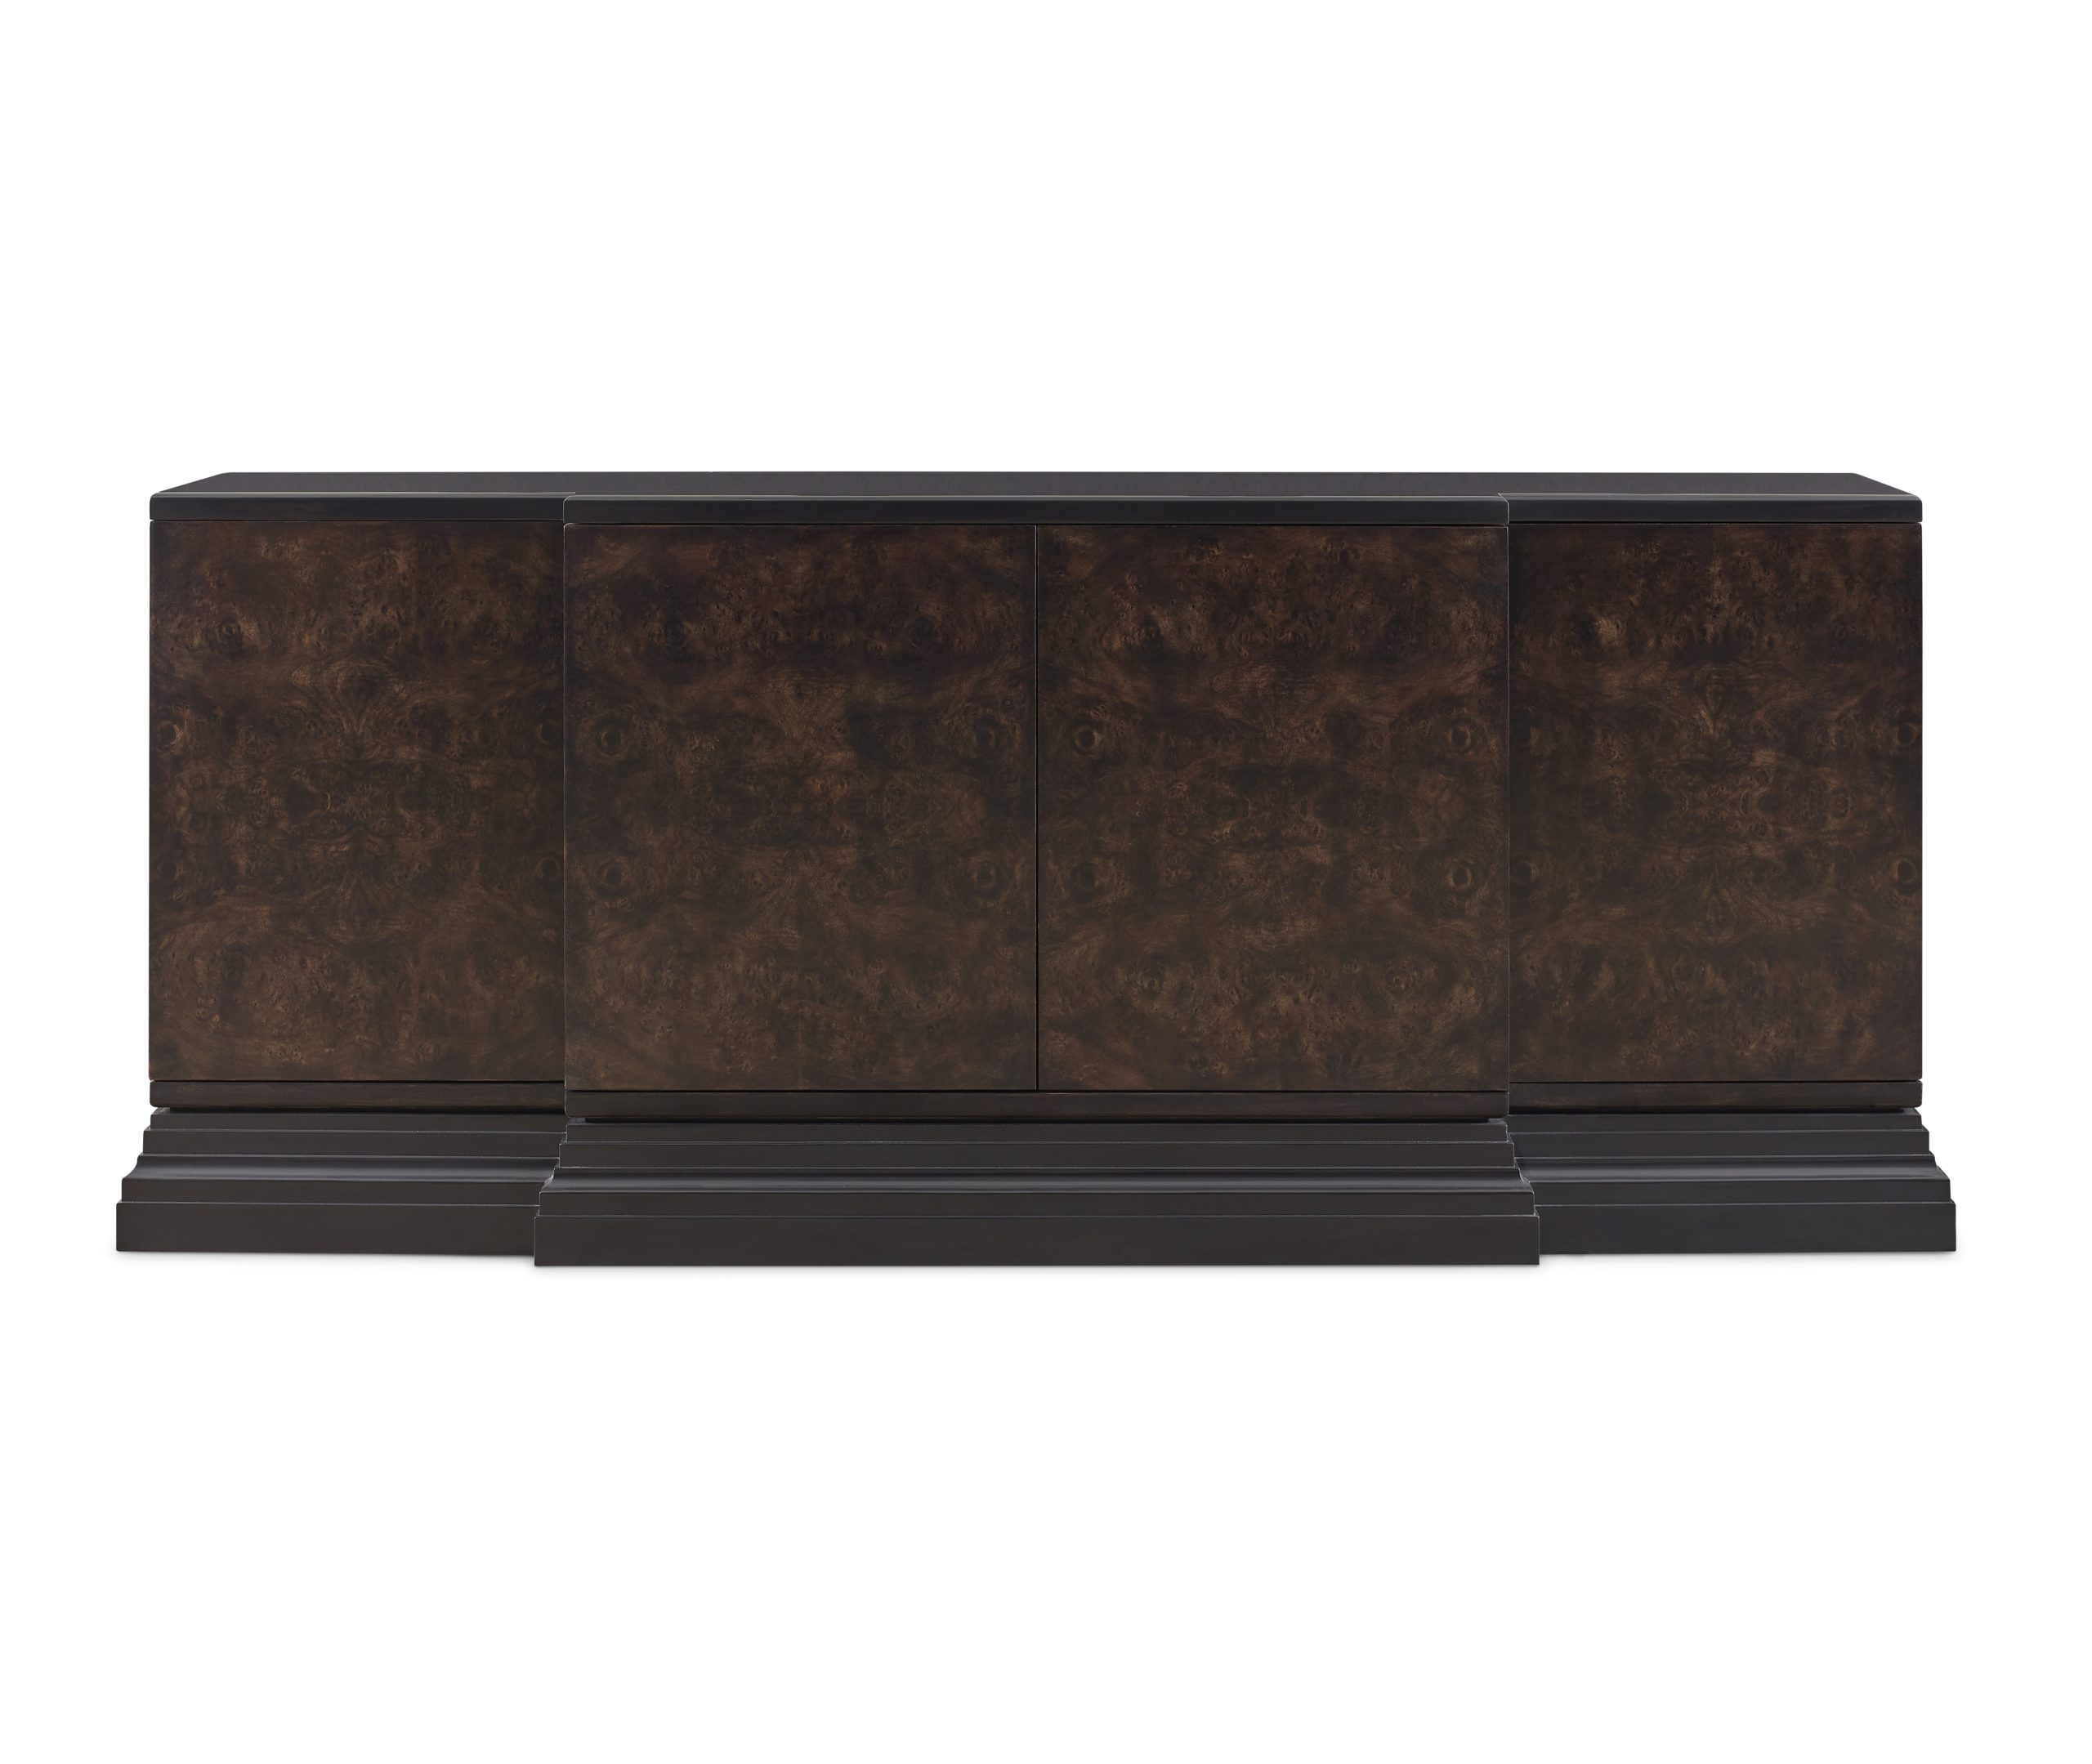 Baker_products_WNWN_maximus_credenza_BAA3030_FRONT-scaled-1